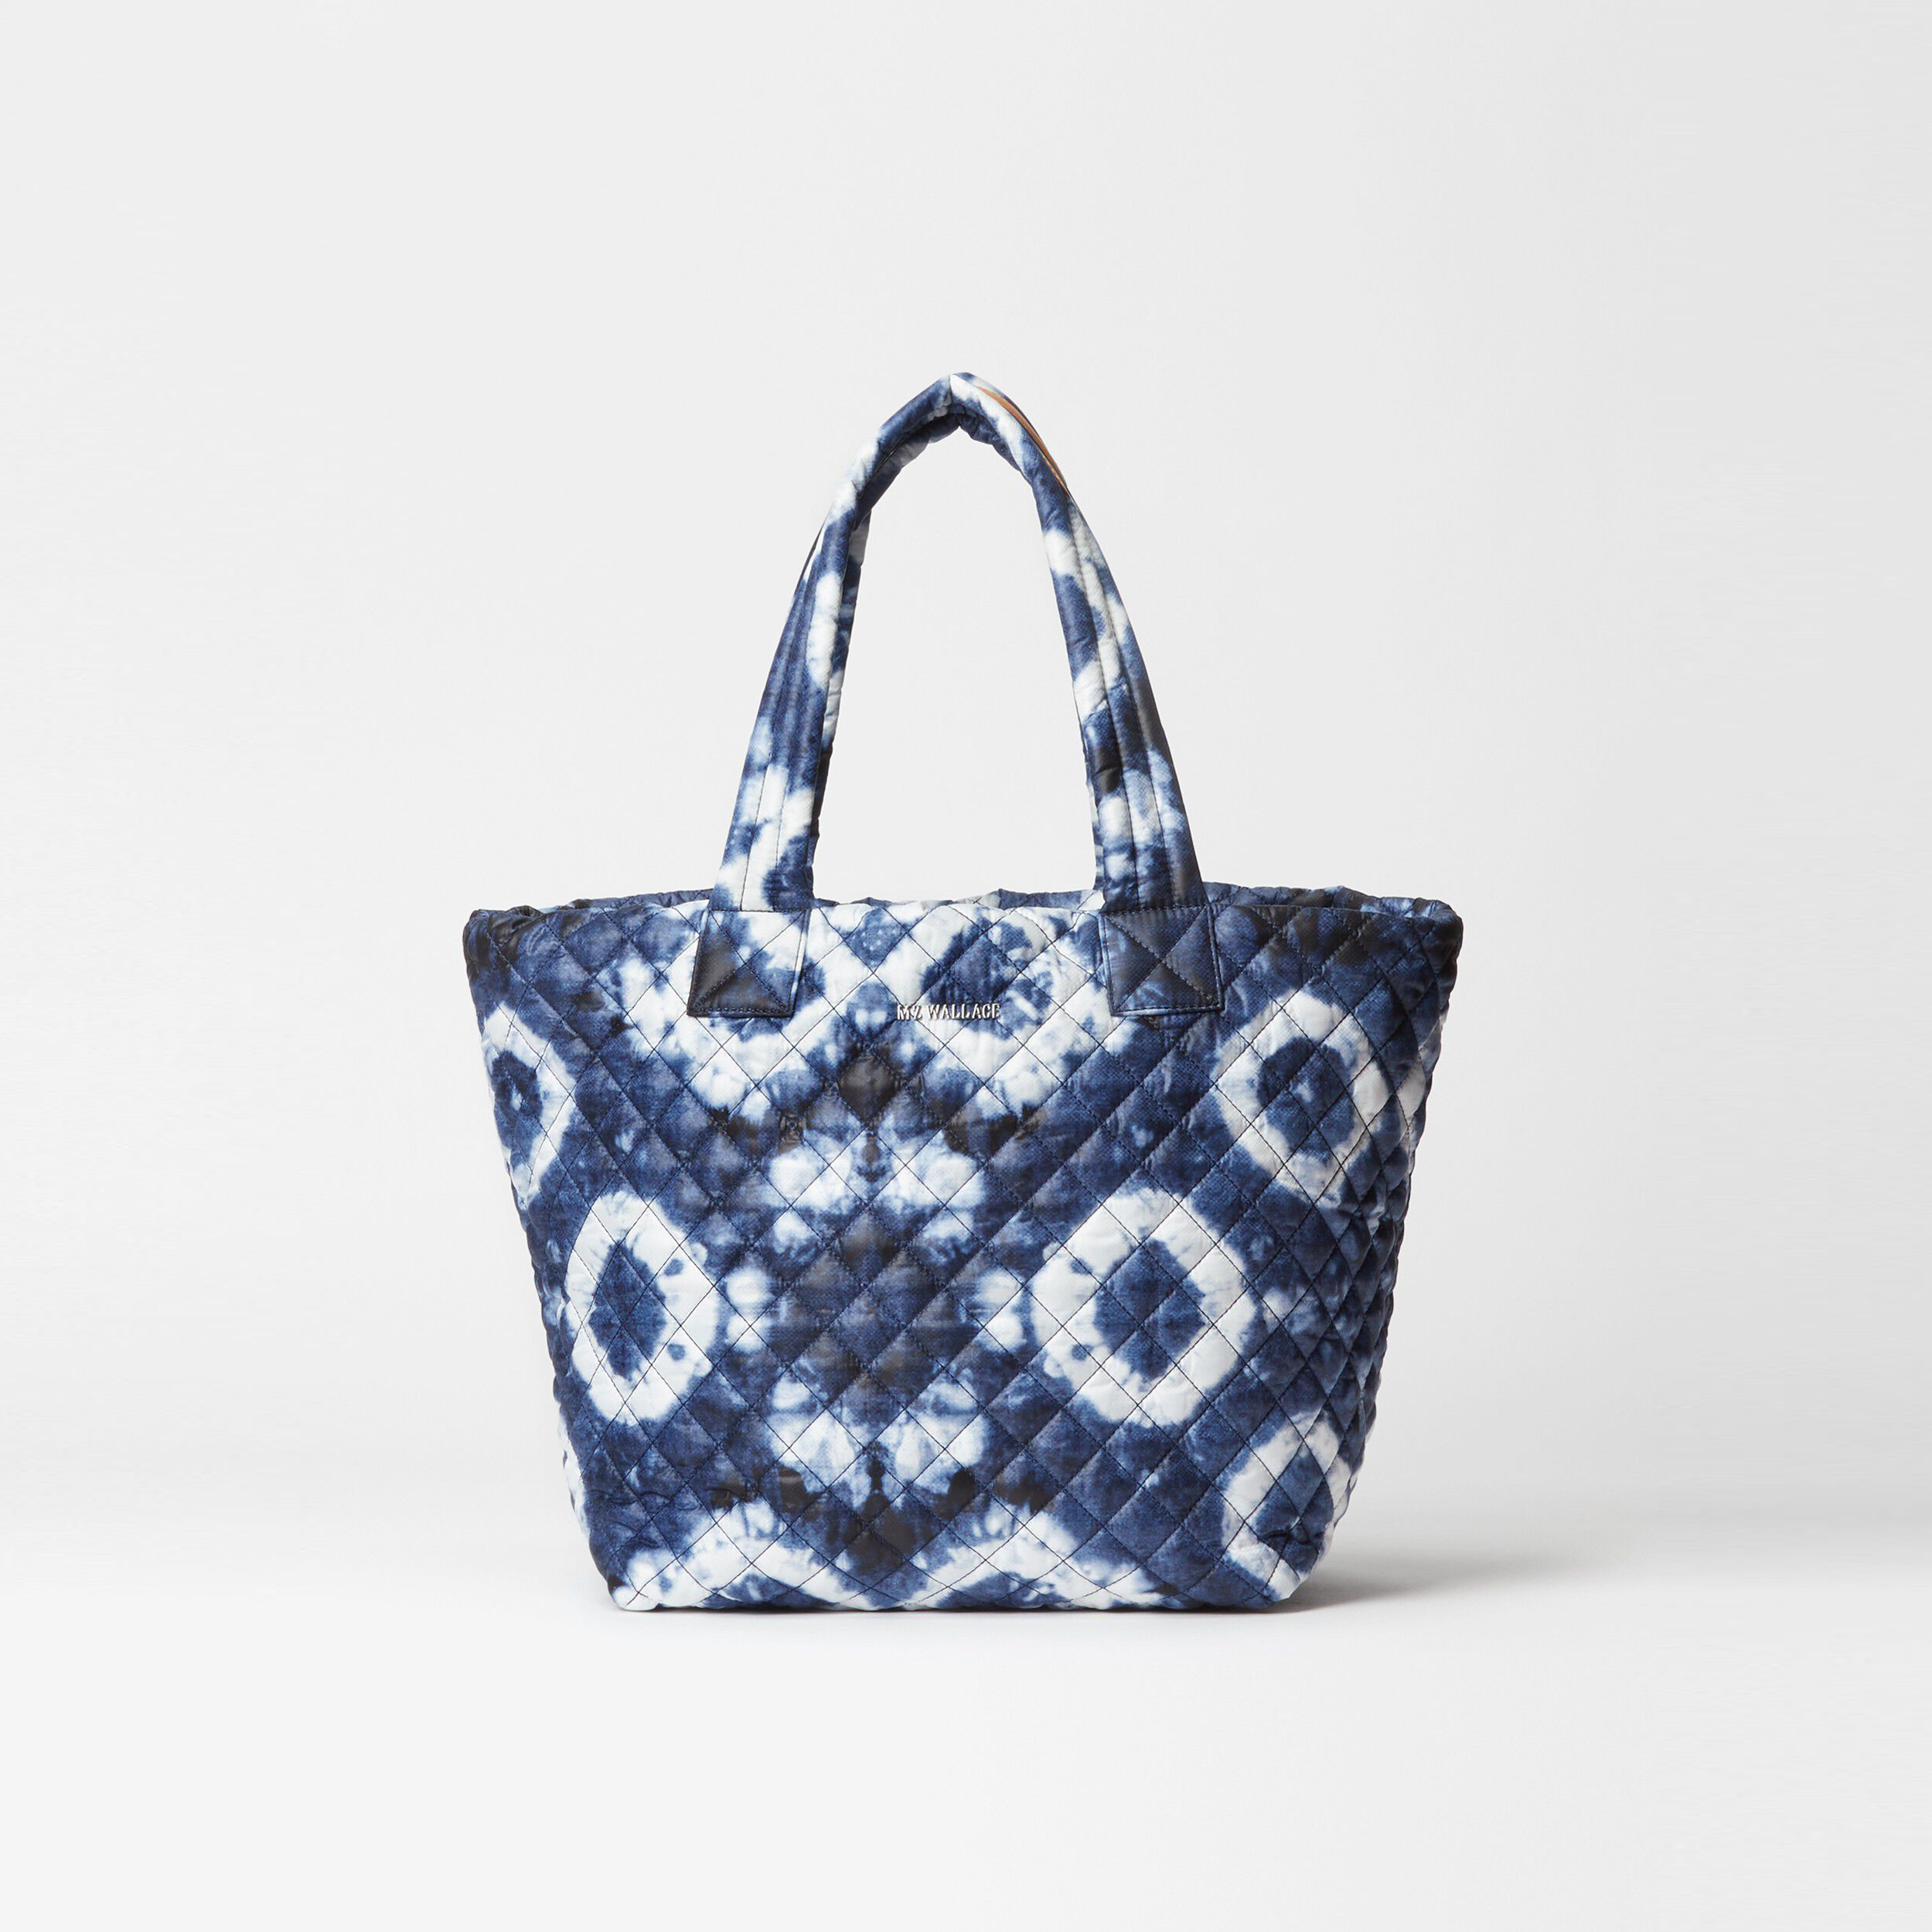 MZ Wallace Medium Metro Tote in Indigo Tie-Dye Oxford